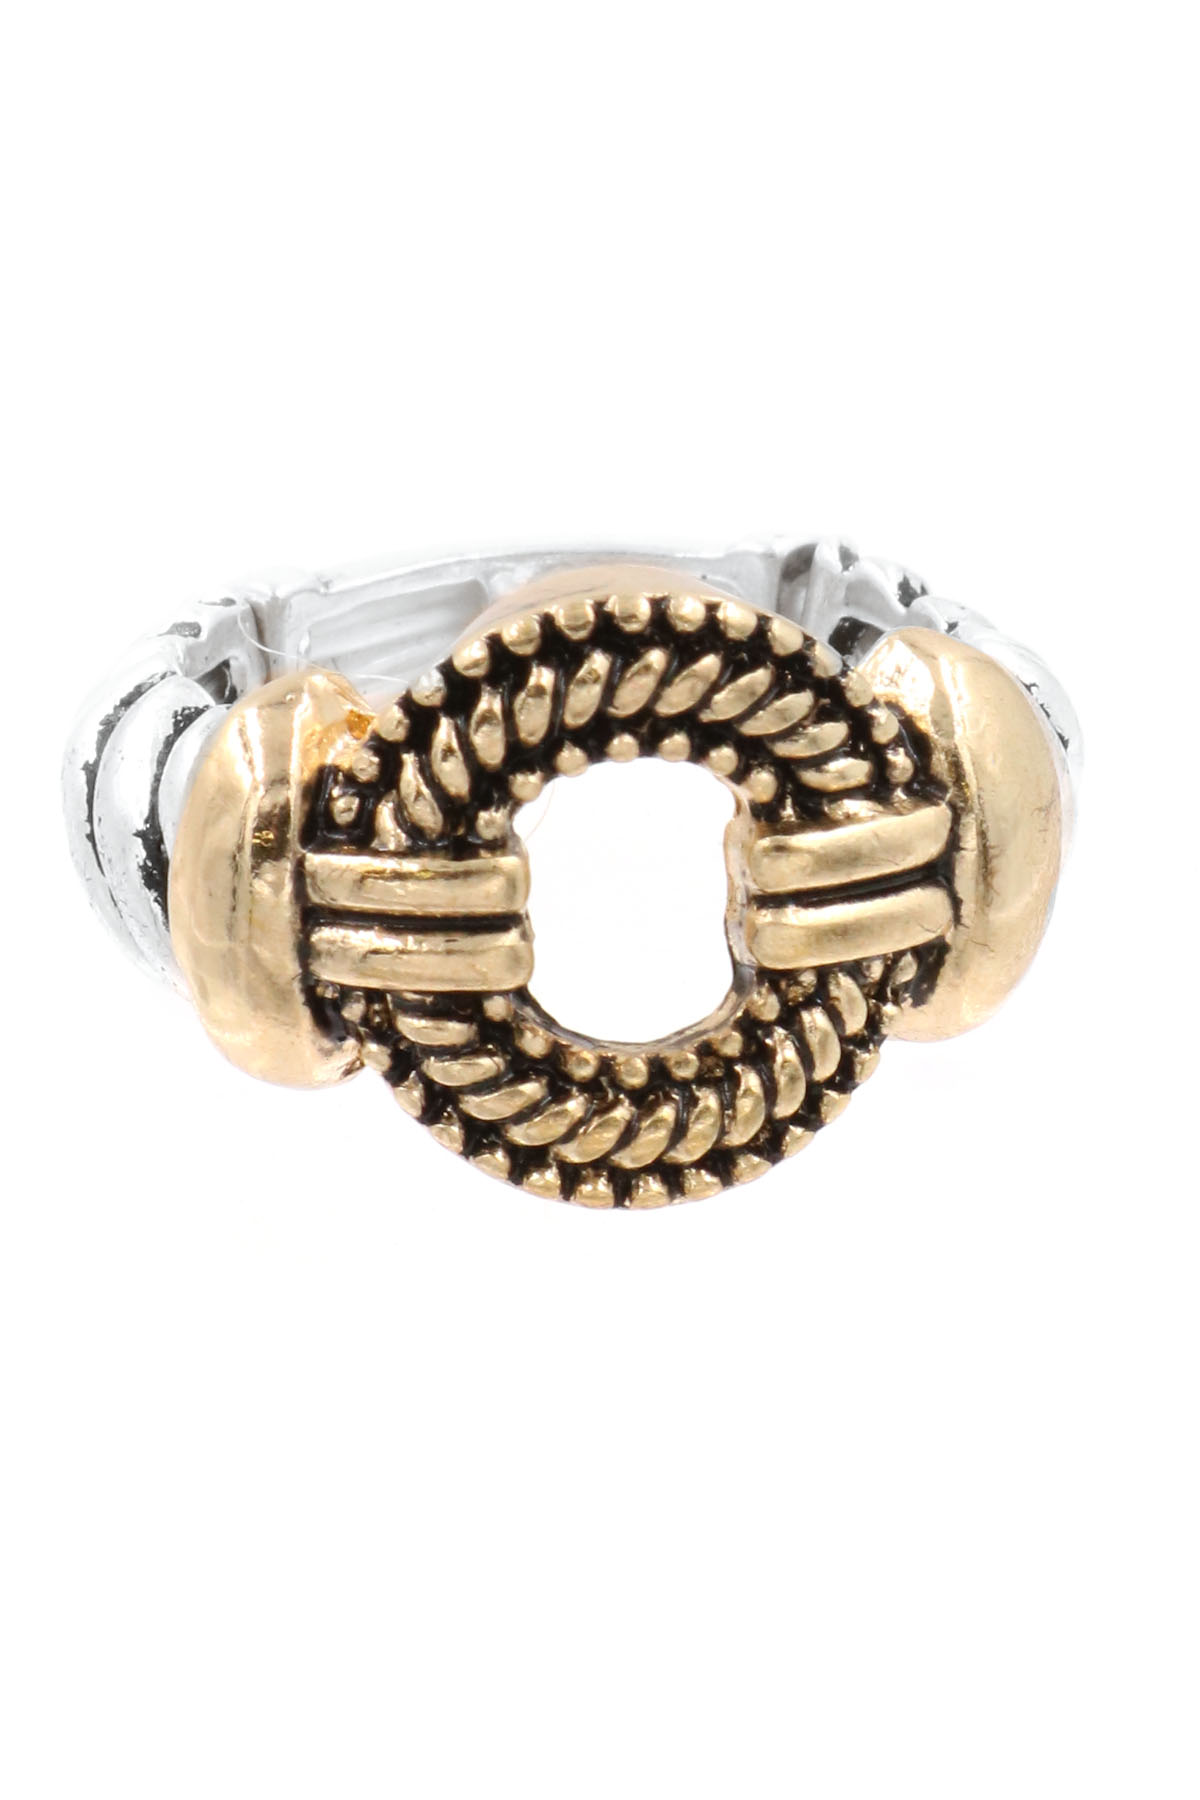 Textured Metal Stretch Ring - Rings